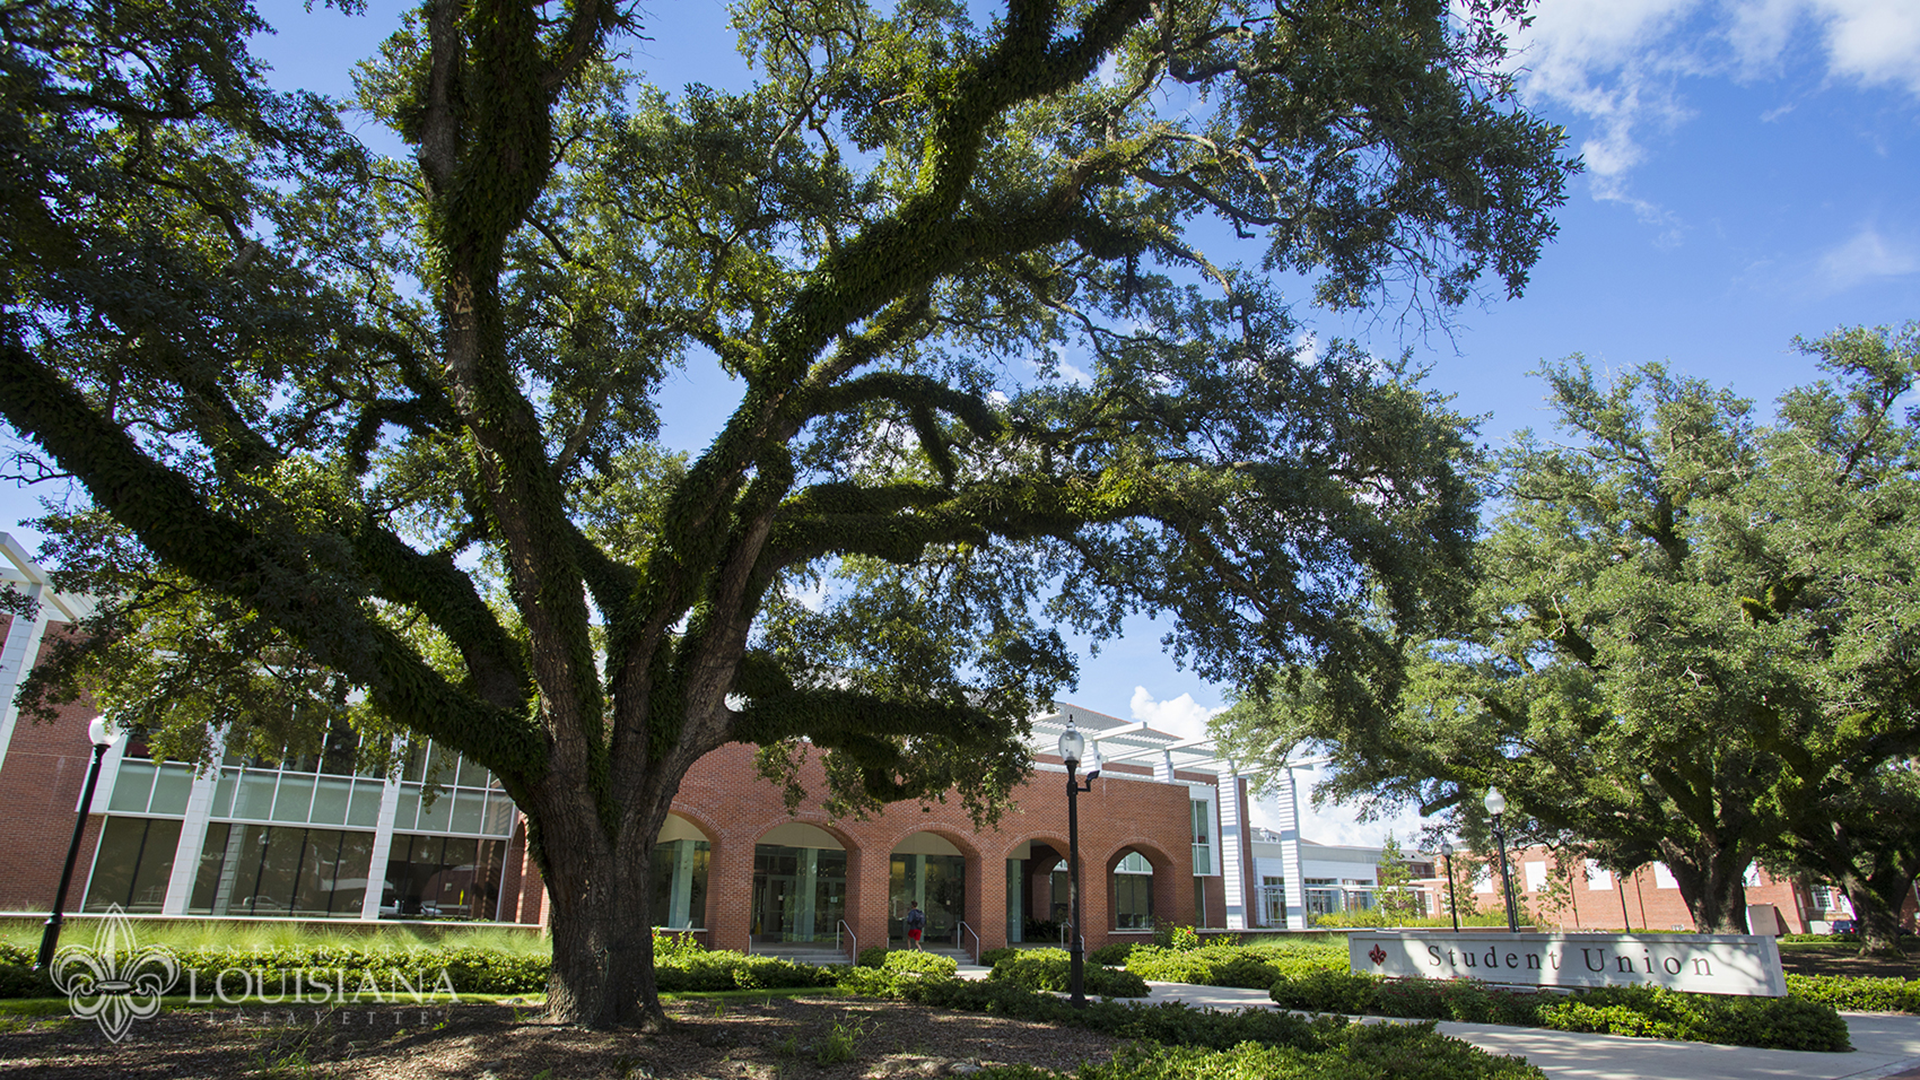 Image of the University of Louisiana at Lafayette Student Union and live oaks.